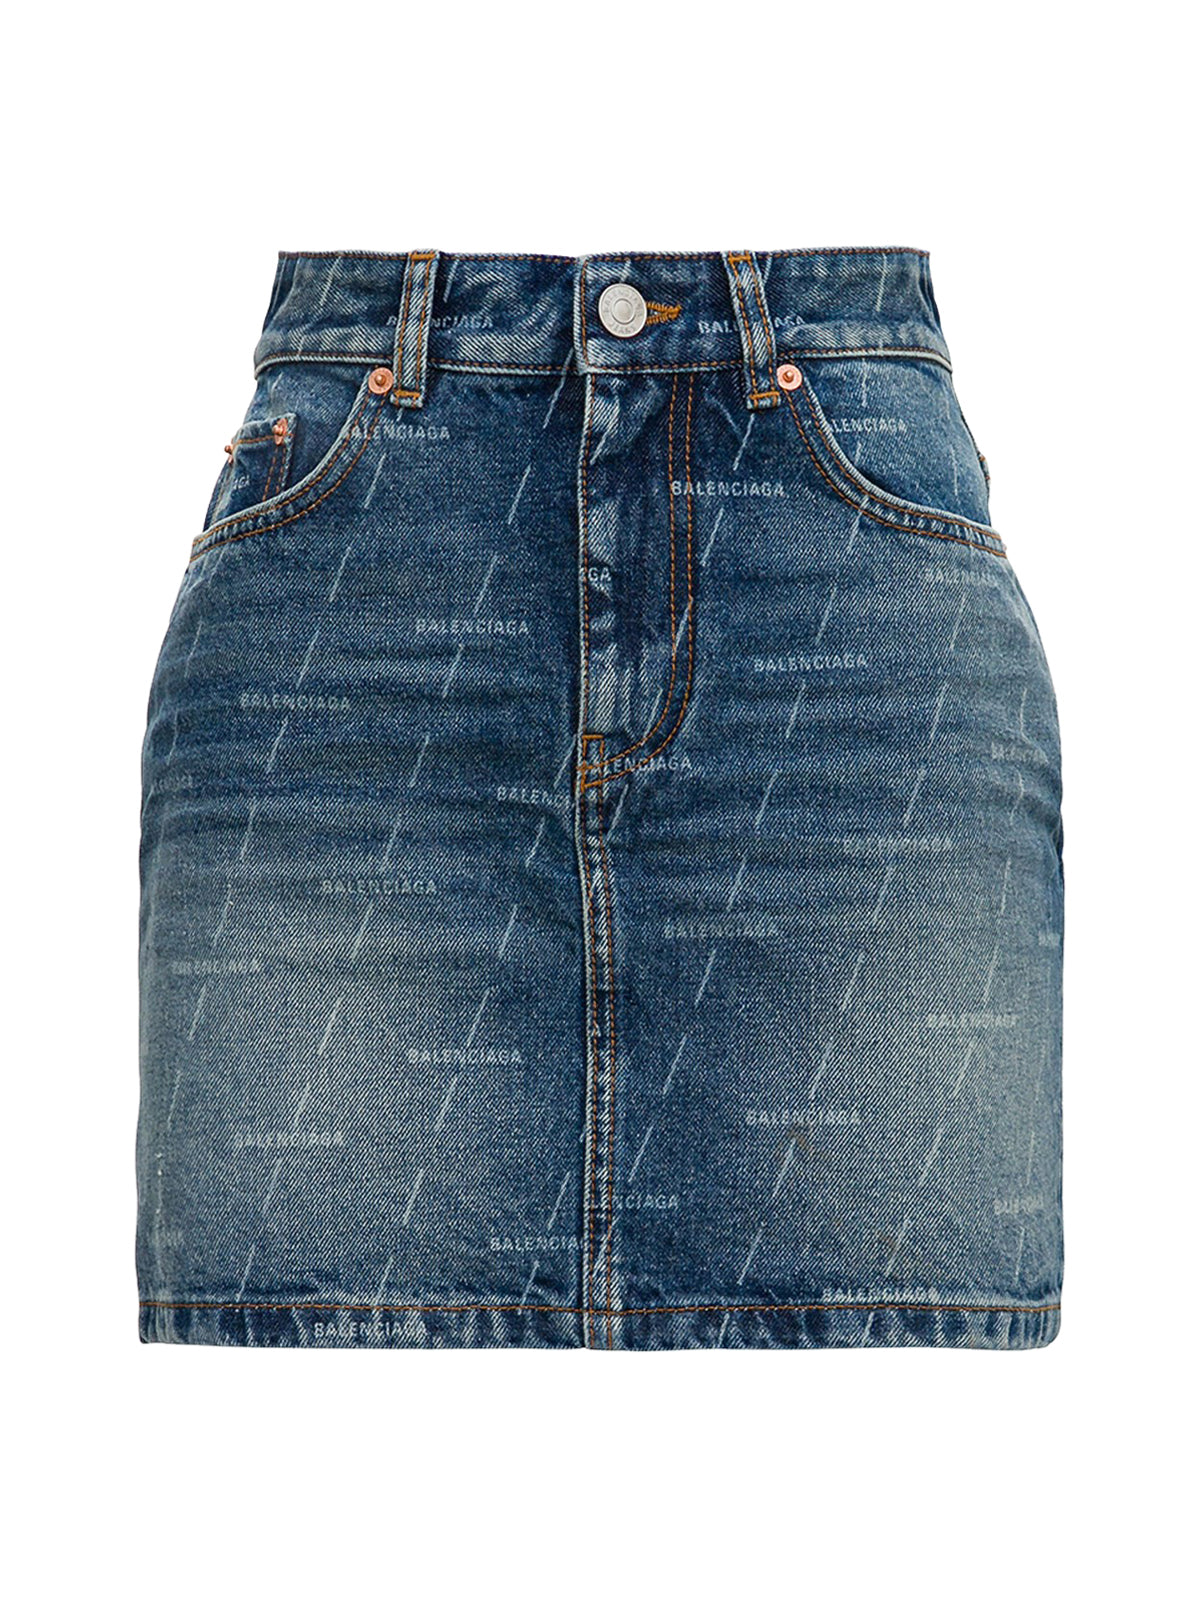 MINIGONNA IN DENIM con logo